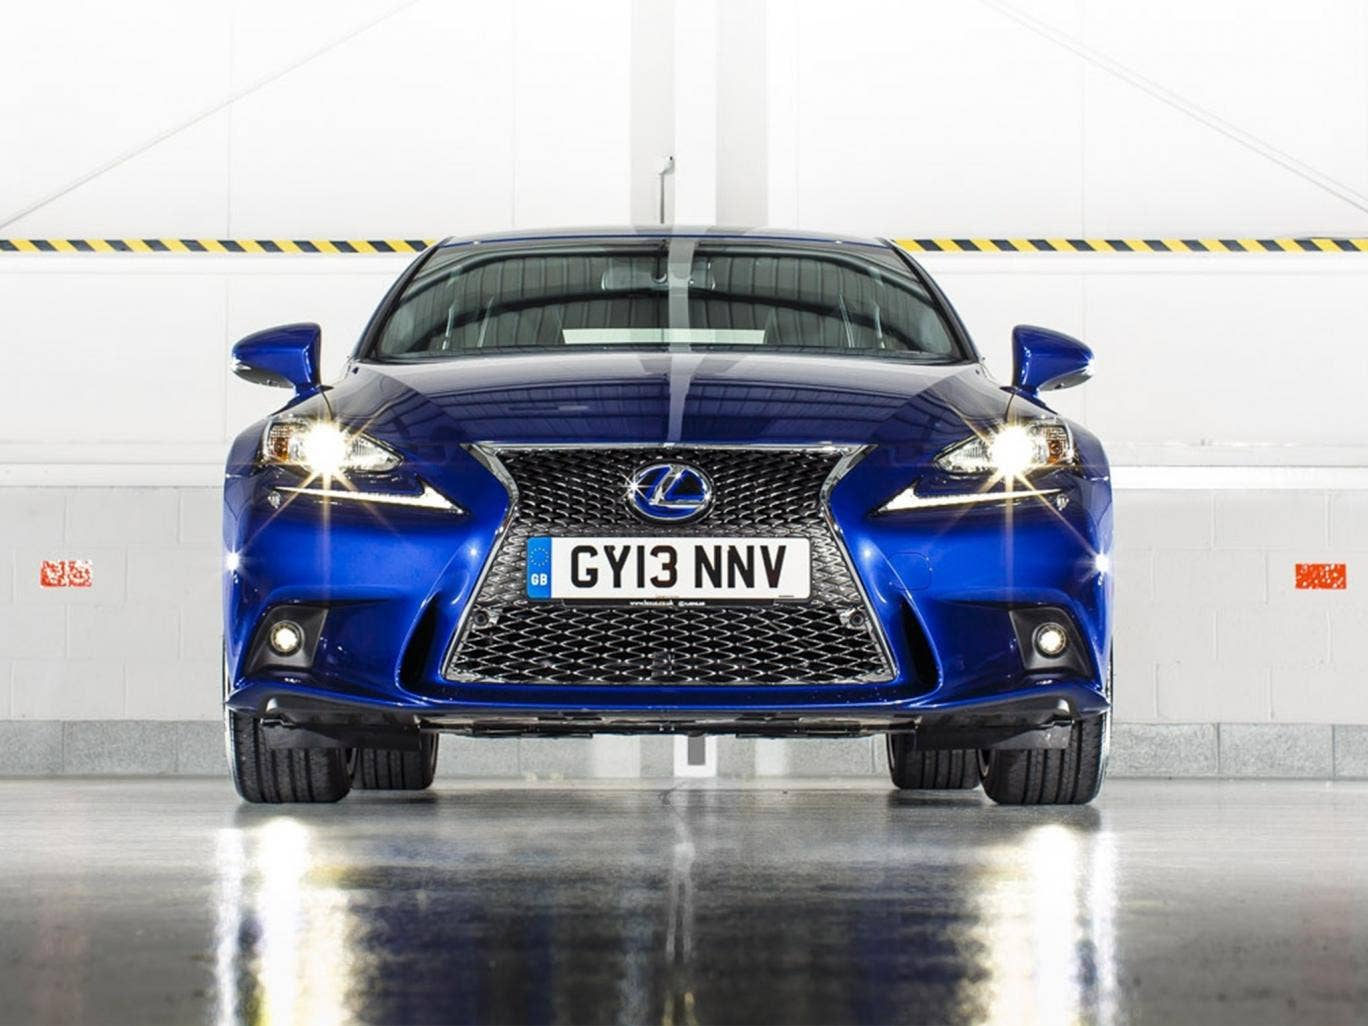 Too sporty: the new Lexus IS300h F Sport